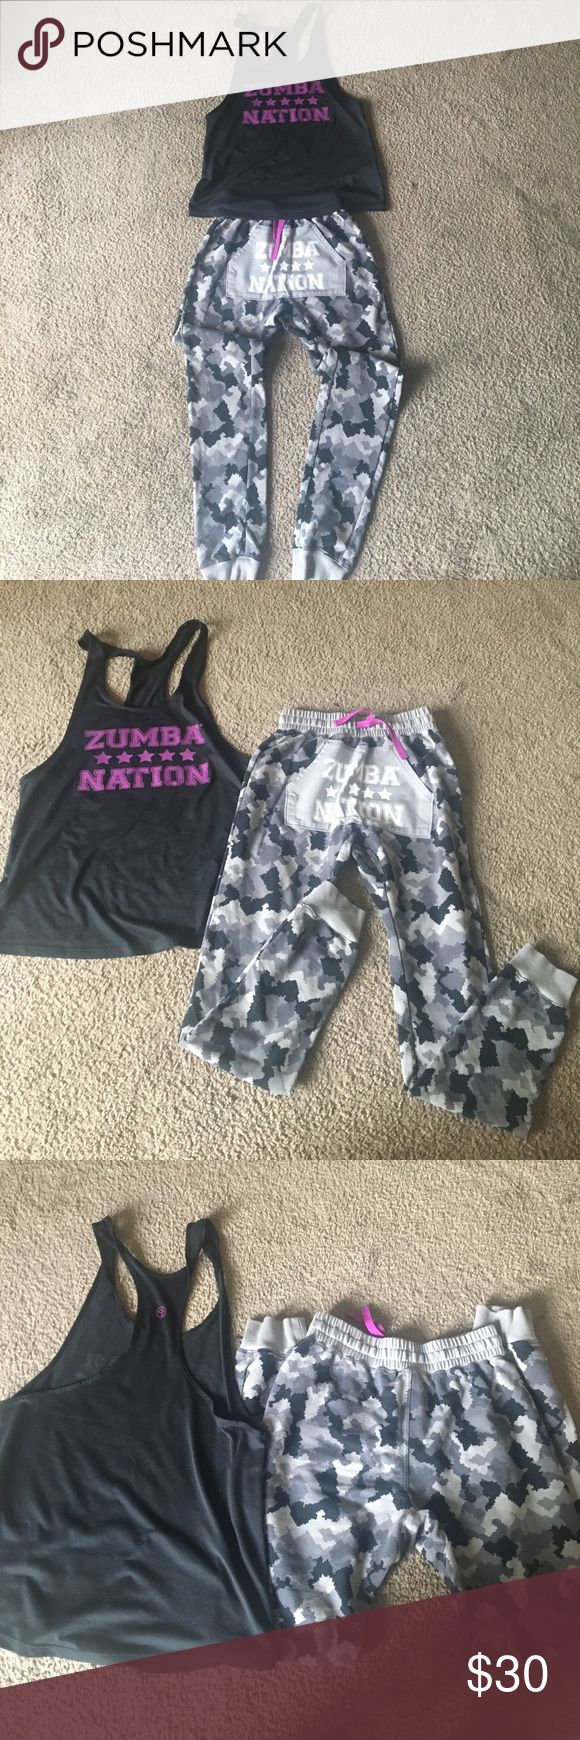 zumba outfit -Xs camo sweatpants(loose fit), Small zumba nation tank could fit xs as well, each like new worn once! zumba Pants Straight Leg